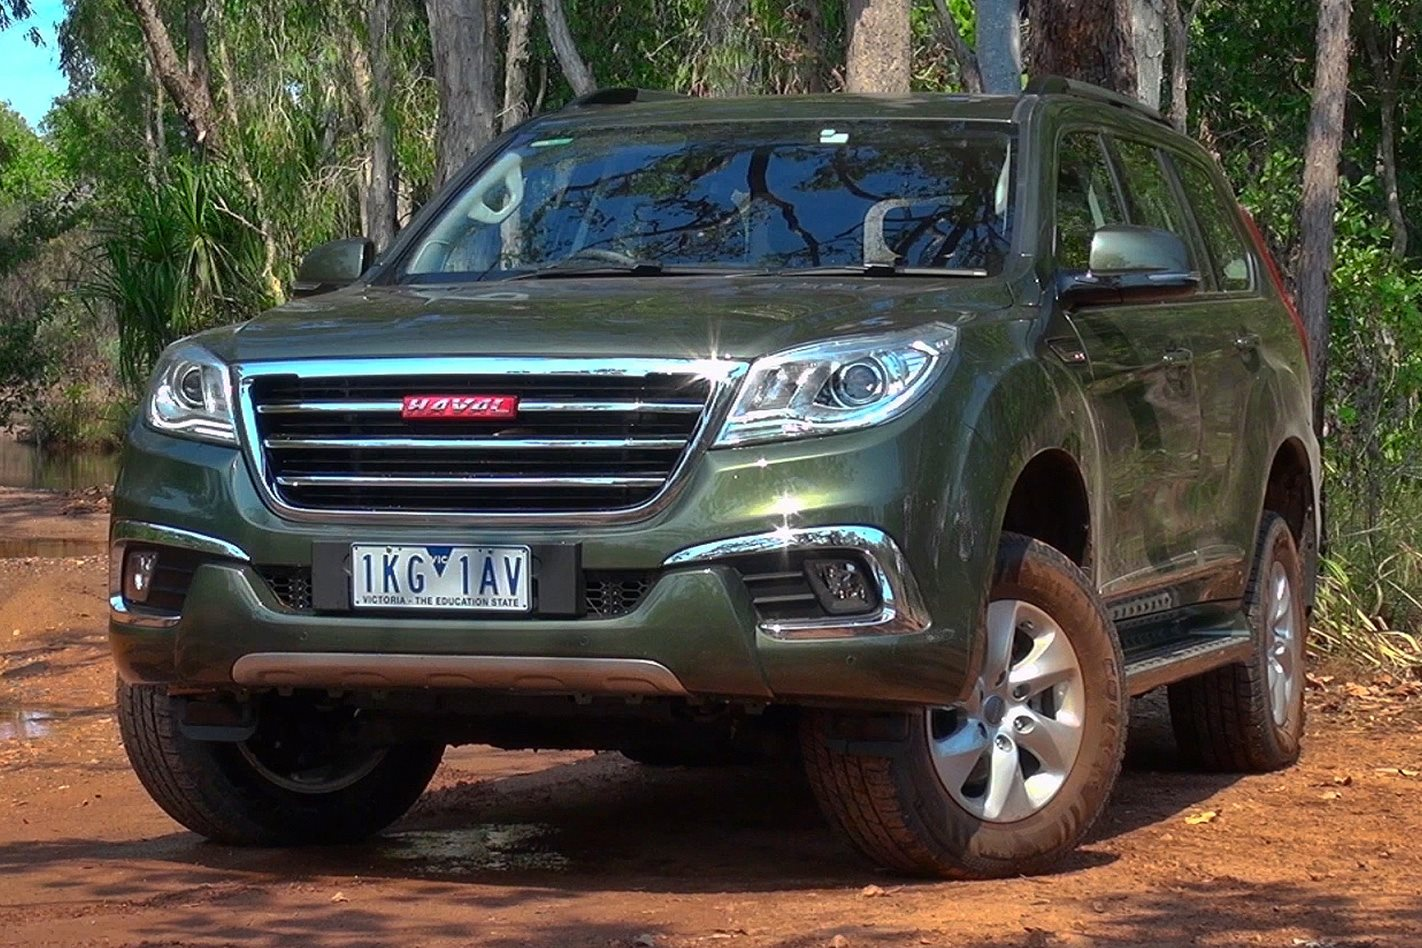 Haval H9 Ironman treatment